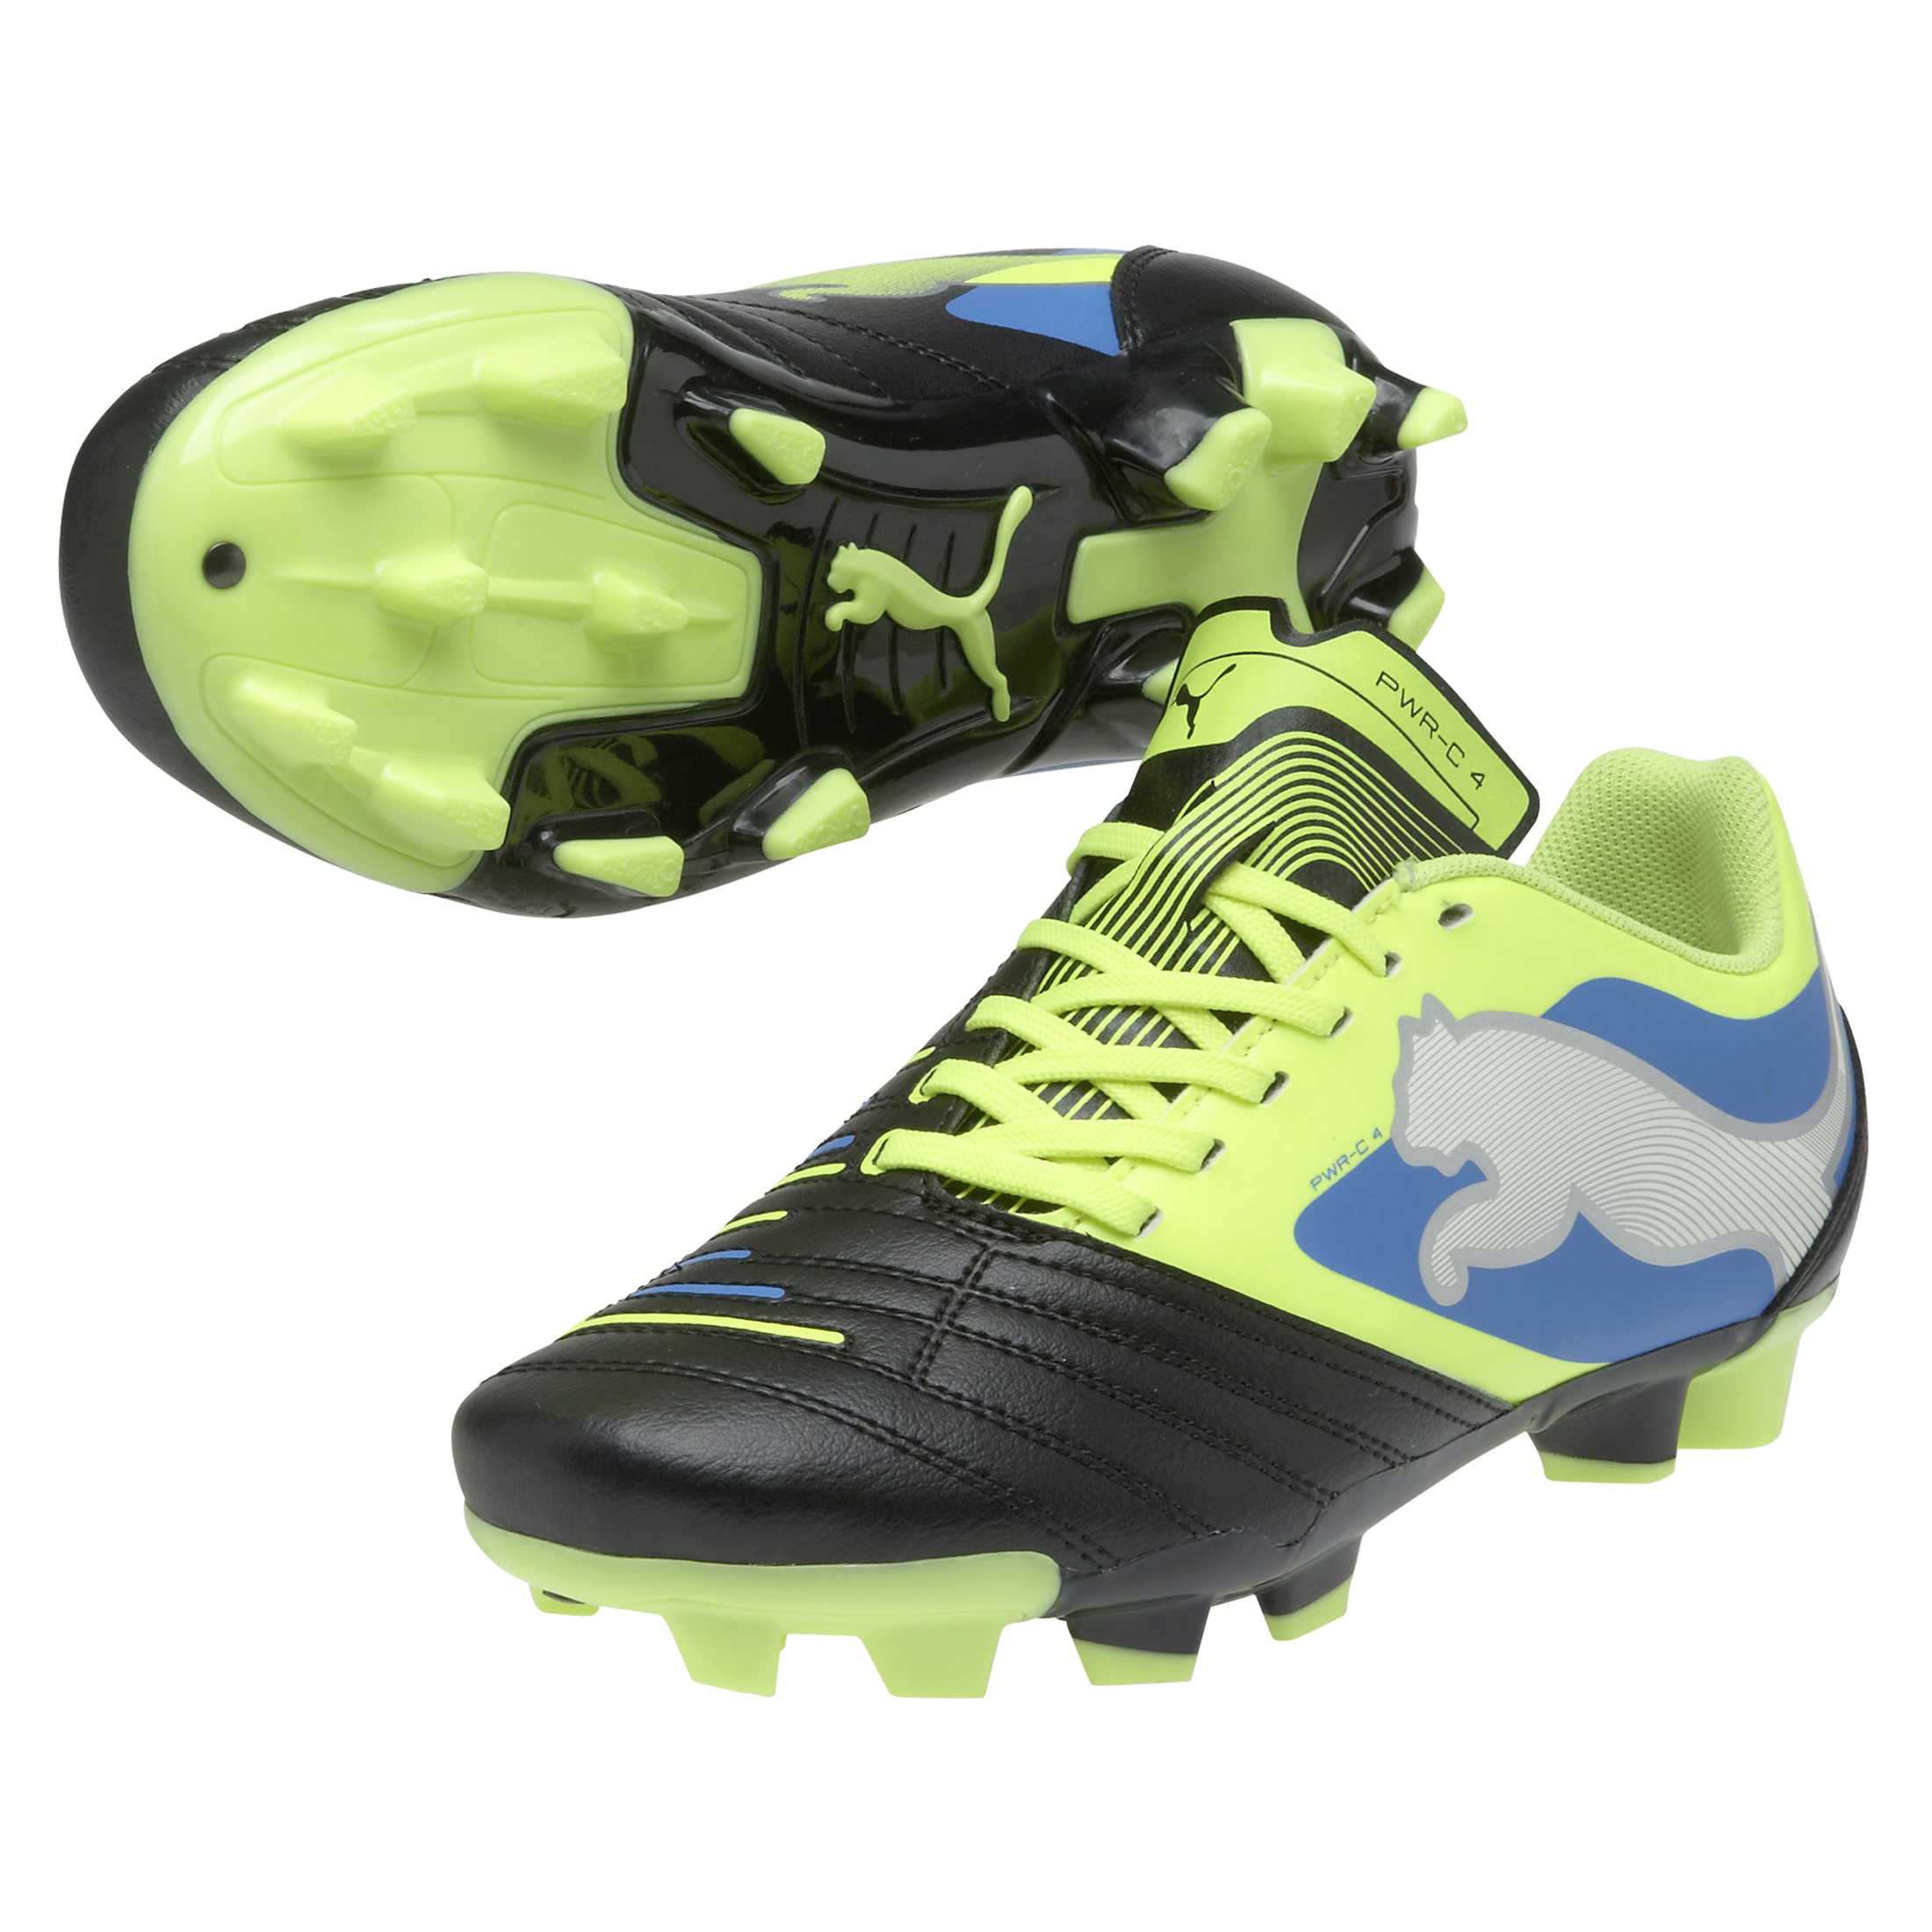 Puma PowerCat 4 Firm Ground Football Boots - Kids Black